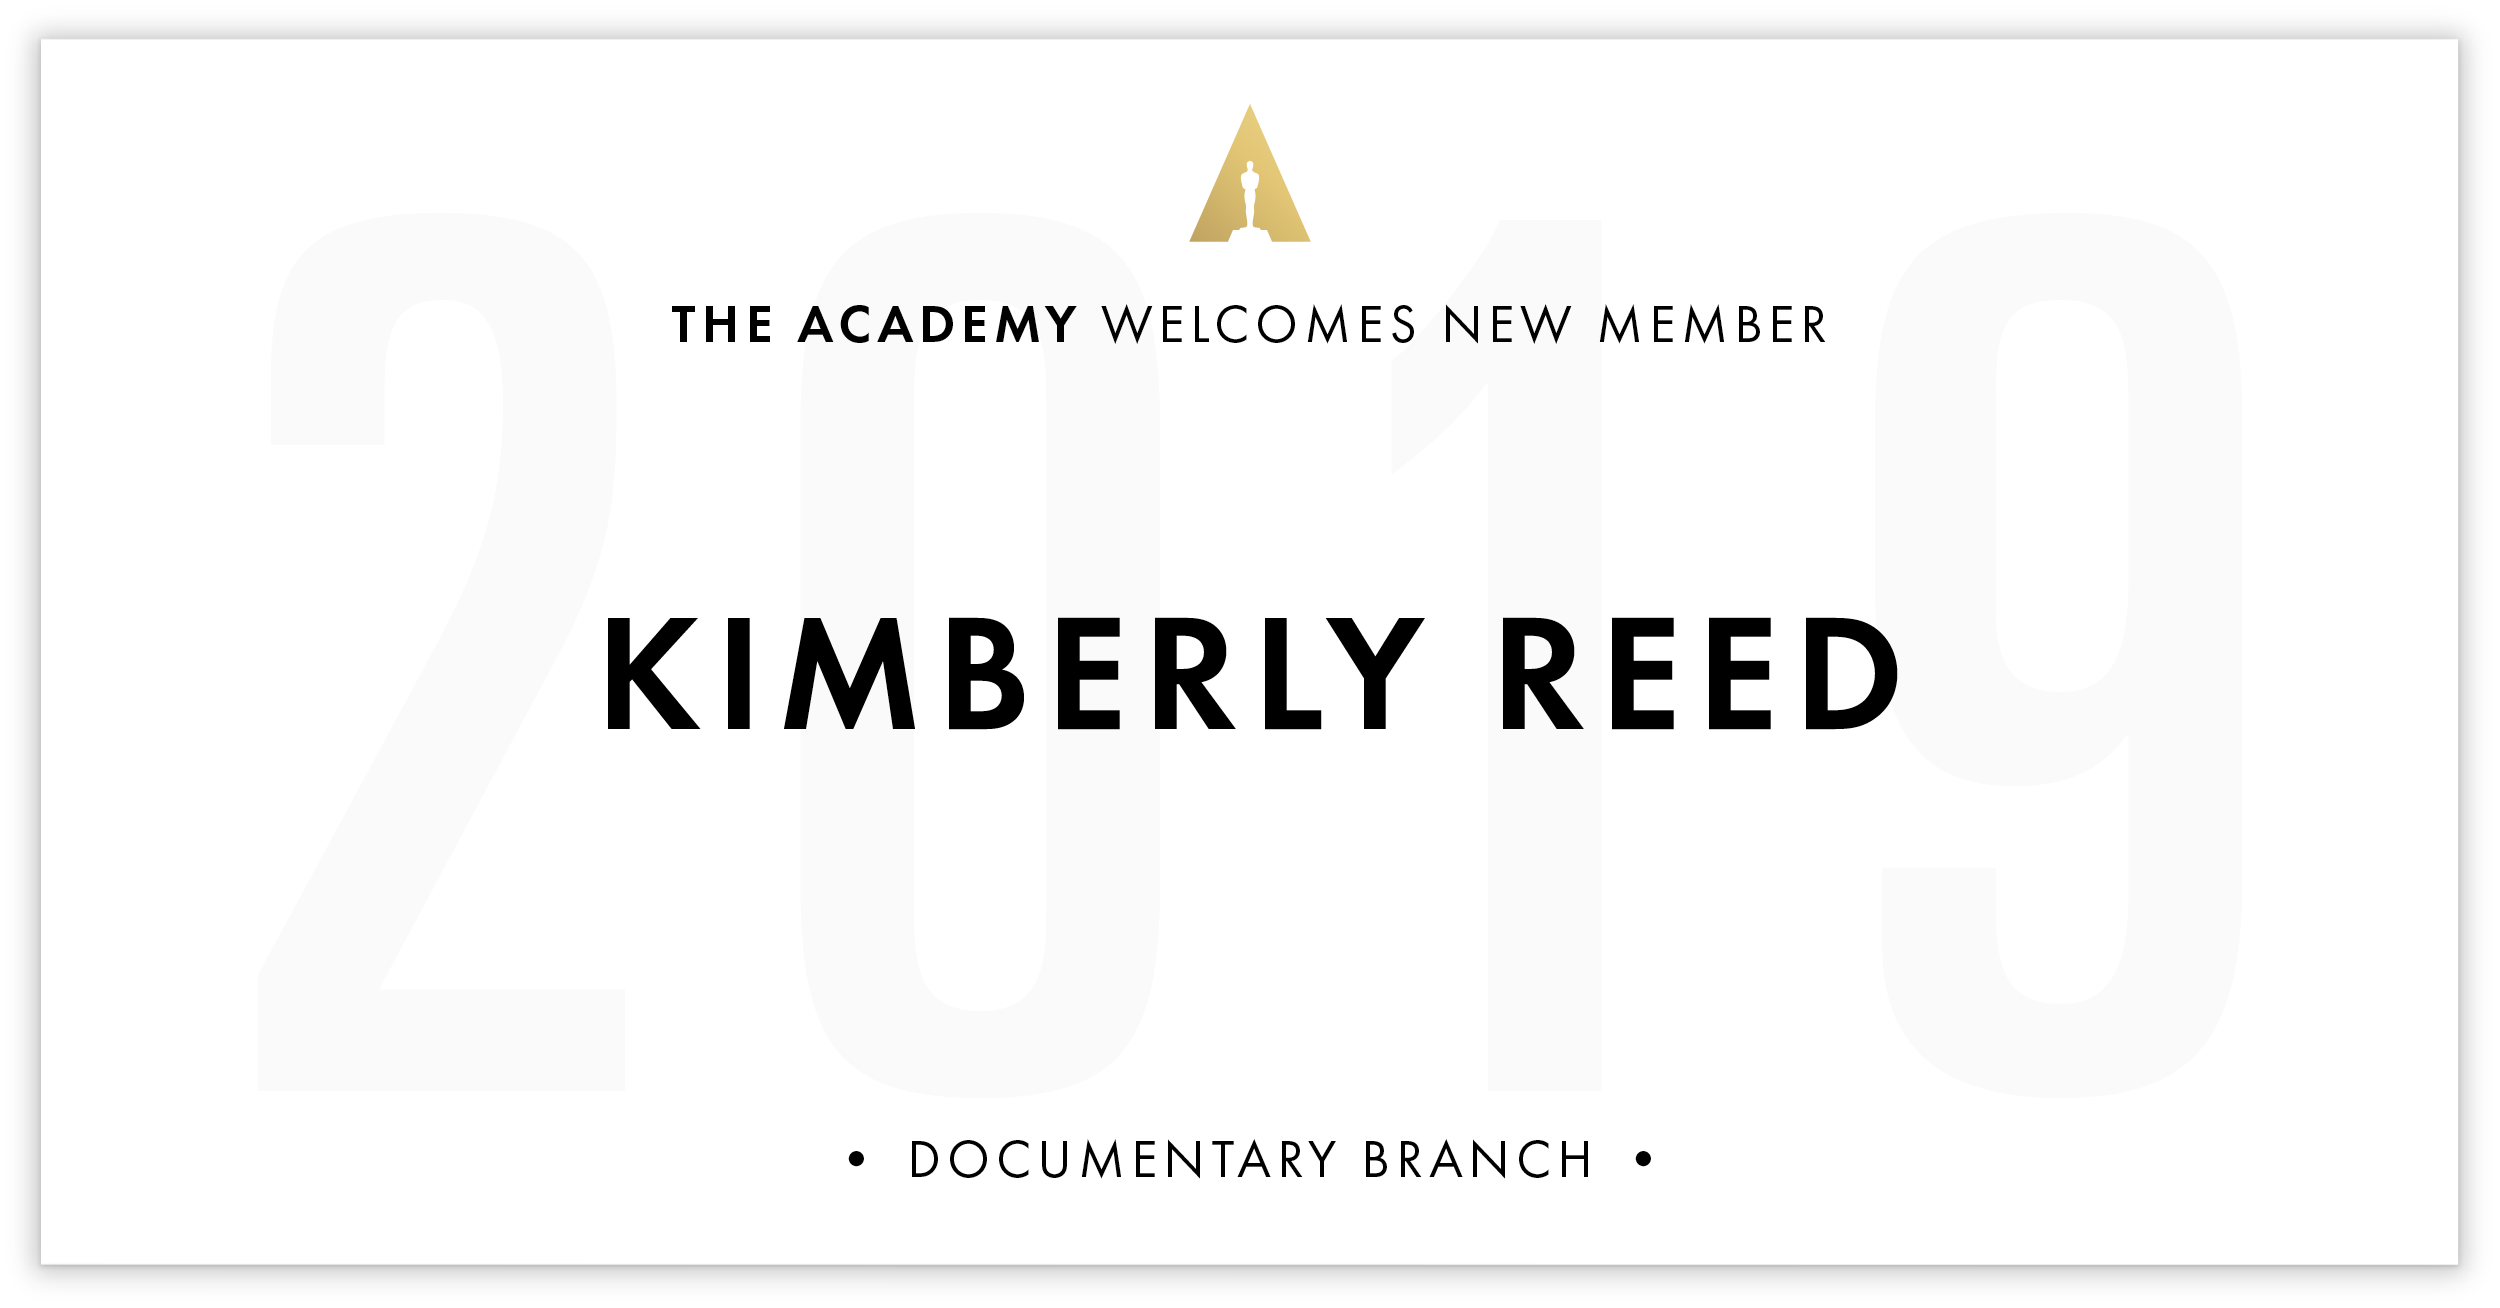 Kimberly Reed is invited!